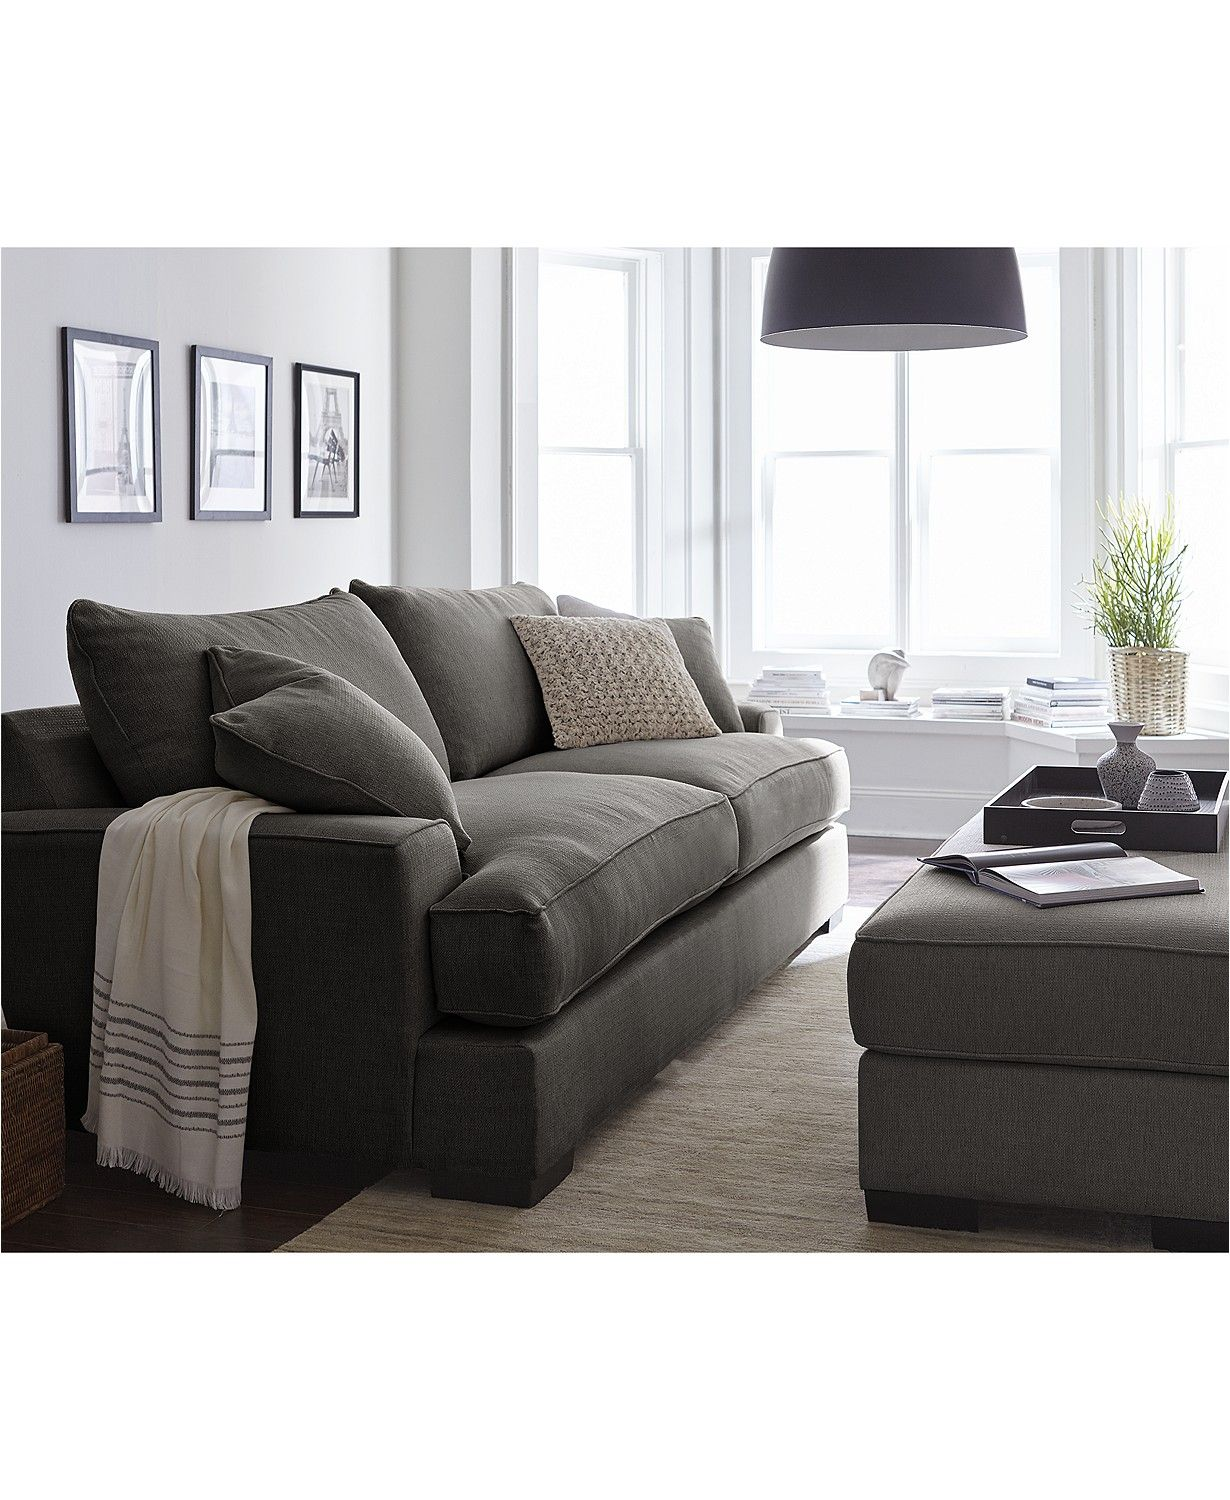 Furniture Ainsley Fabric Sofa Living Room Collection Created For